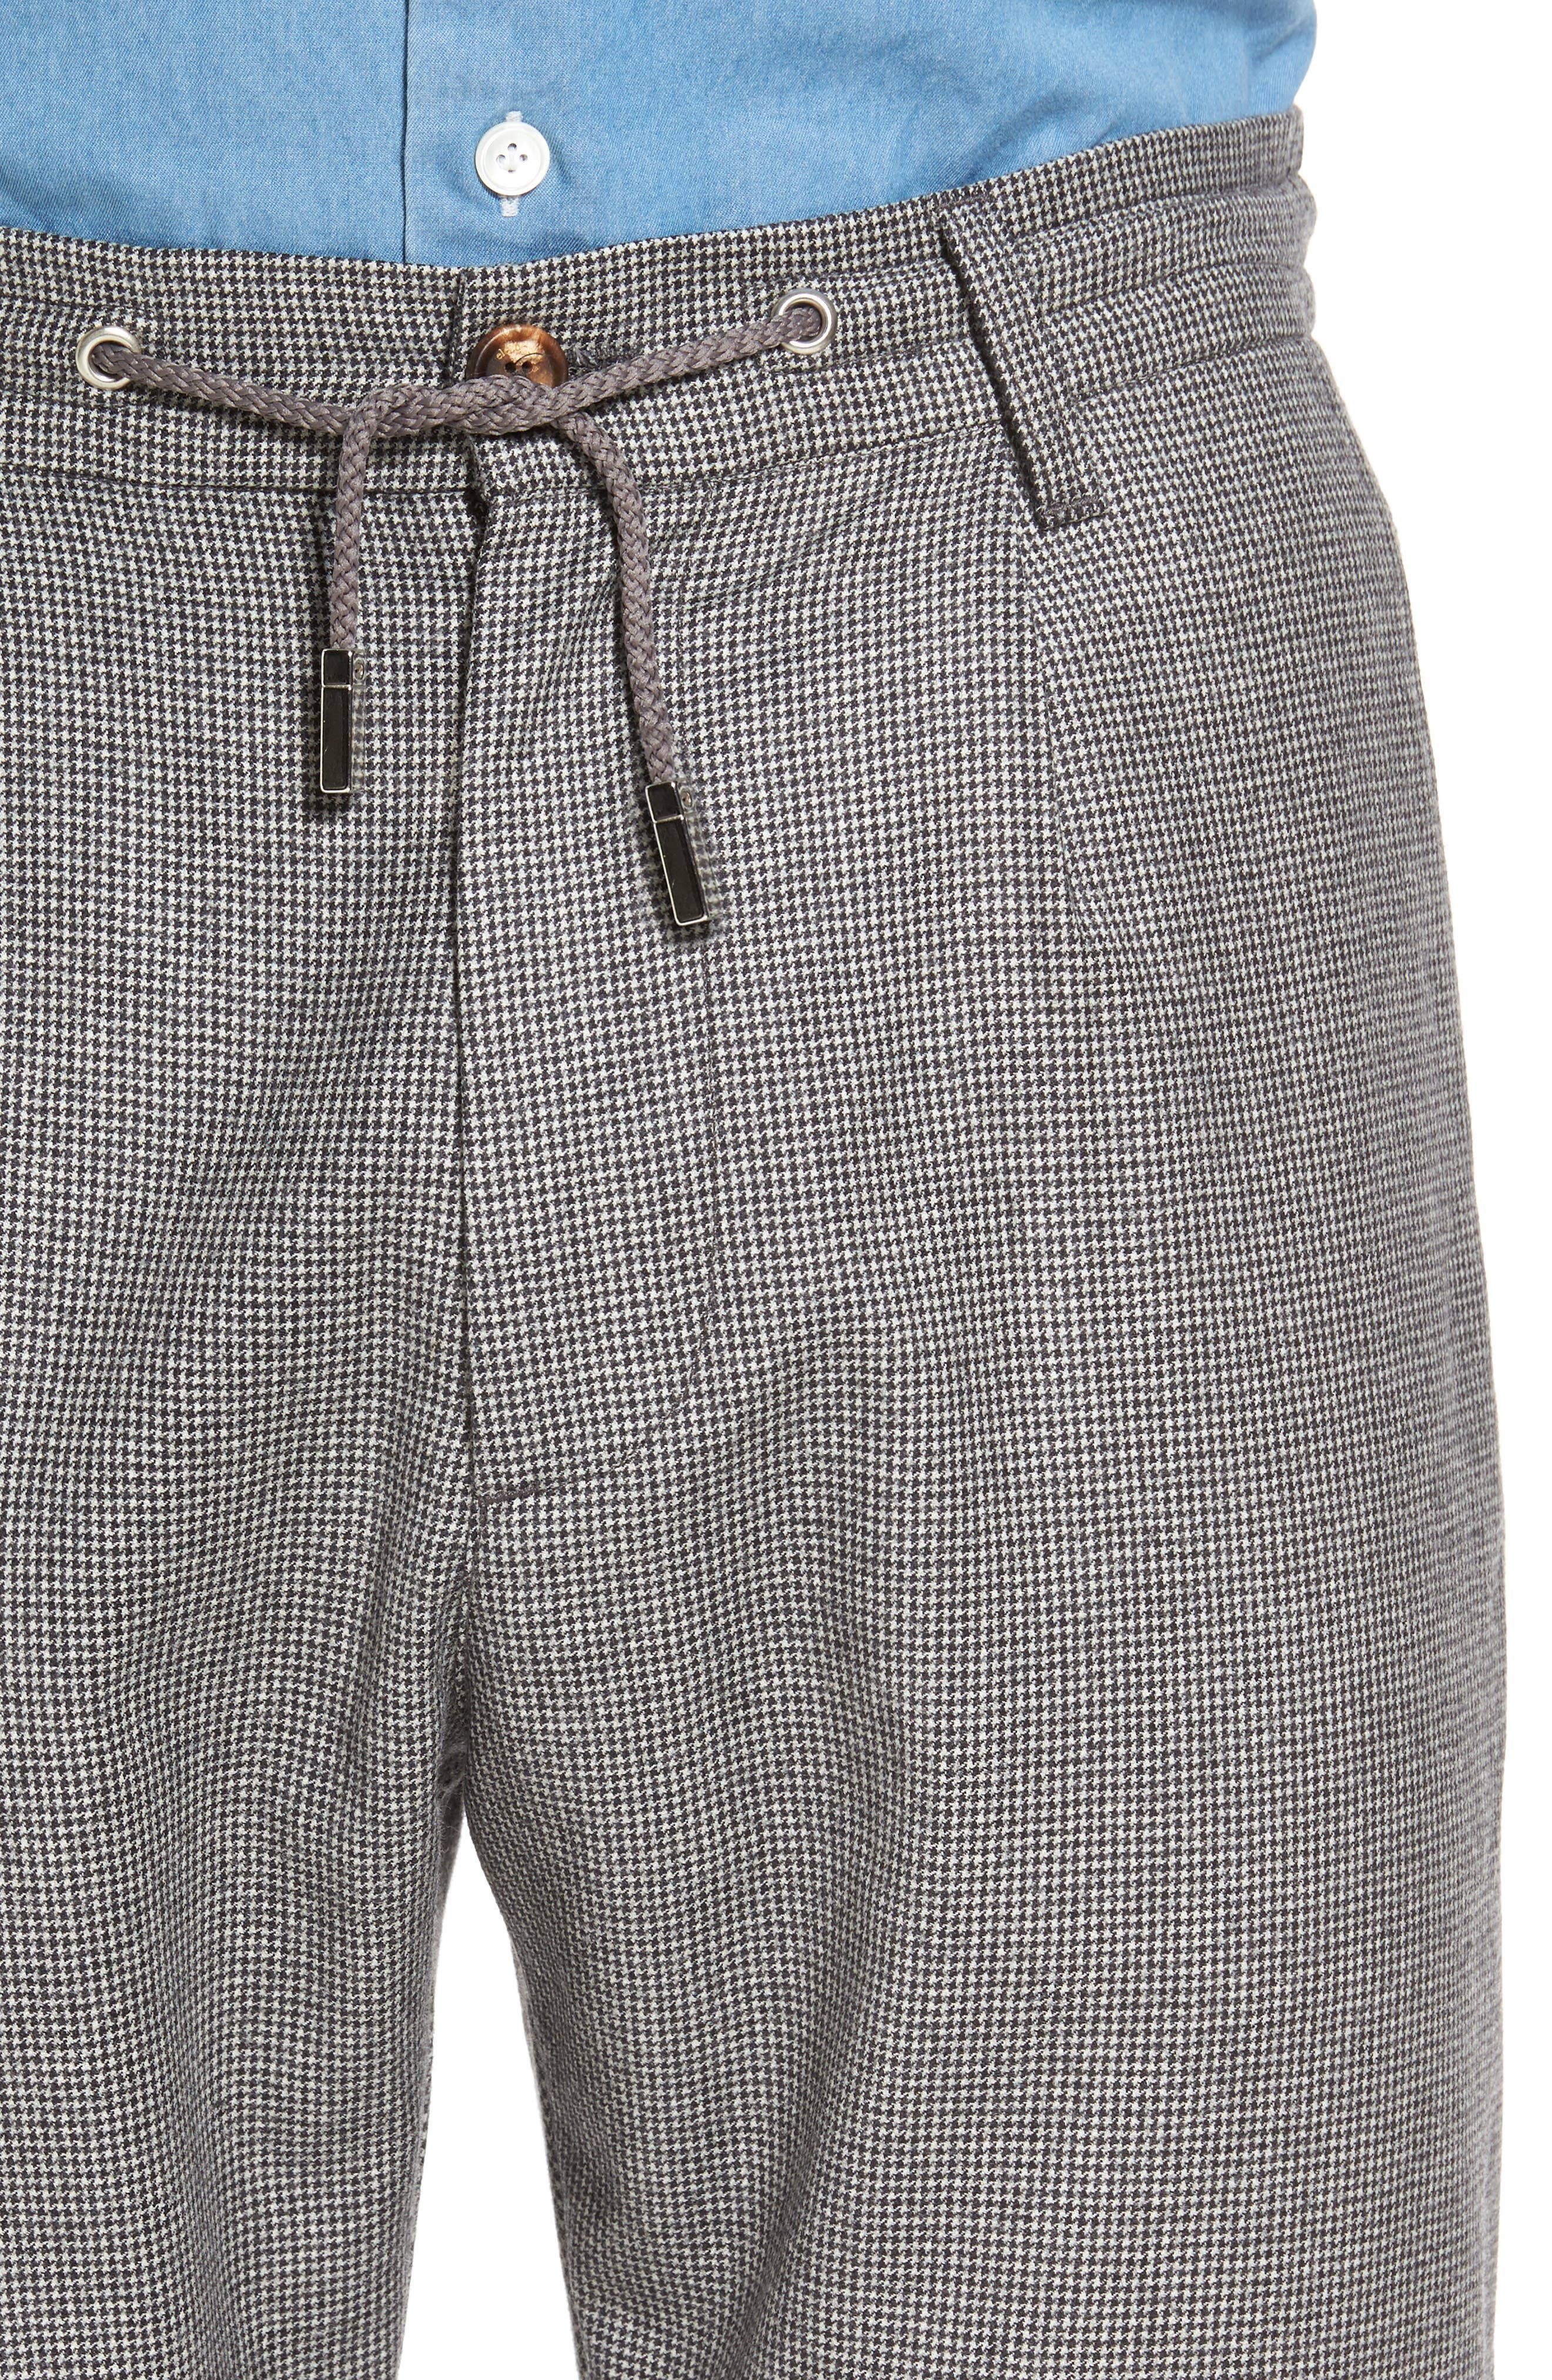 Houndstooth Wool Drawstring Jogger Pants,                             Alternate thumbnail 4, color,                             020